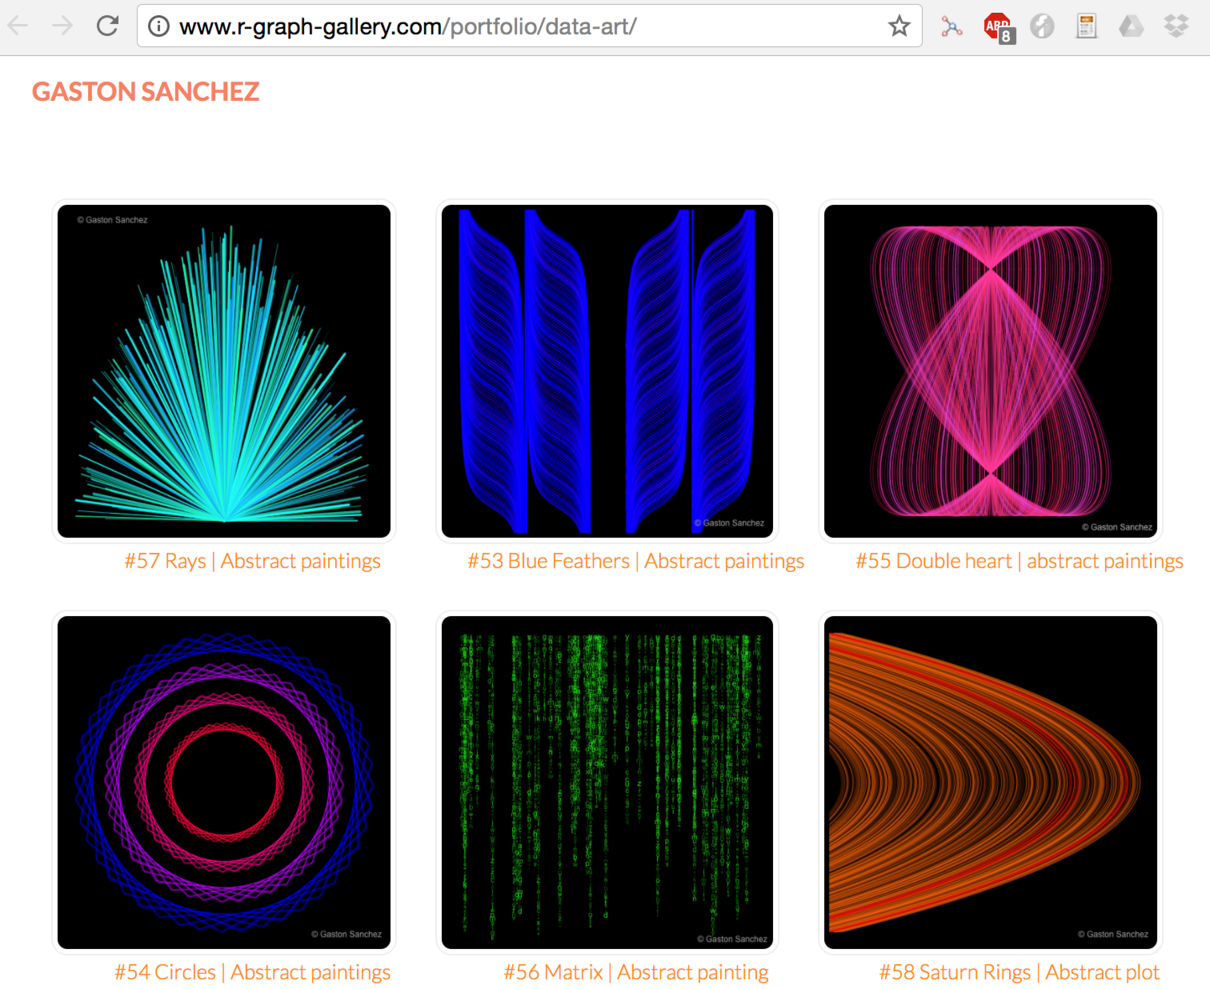 Rtist featured in R graph gallery | Visually Enforced